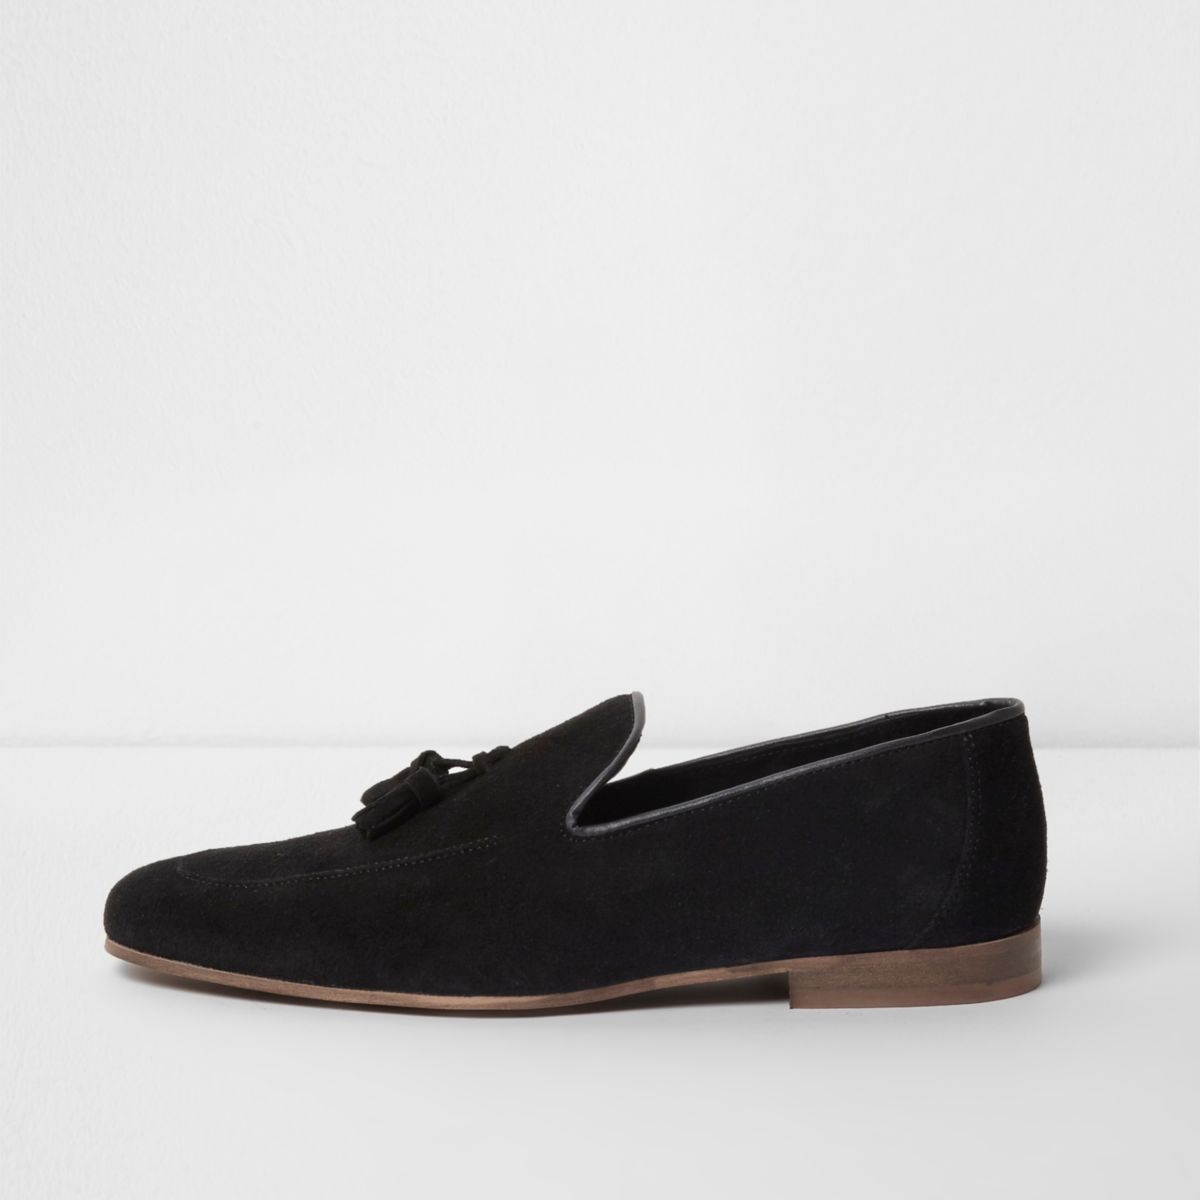 Black suede snaffle loafers free shipping limited edition outlet geniue stockist A4lBoa568